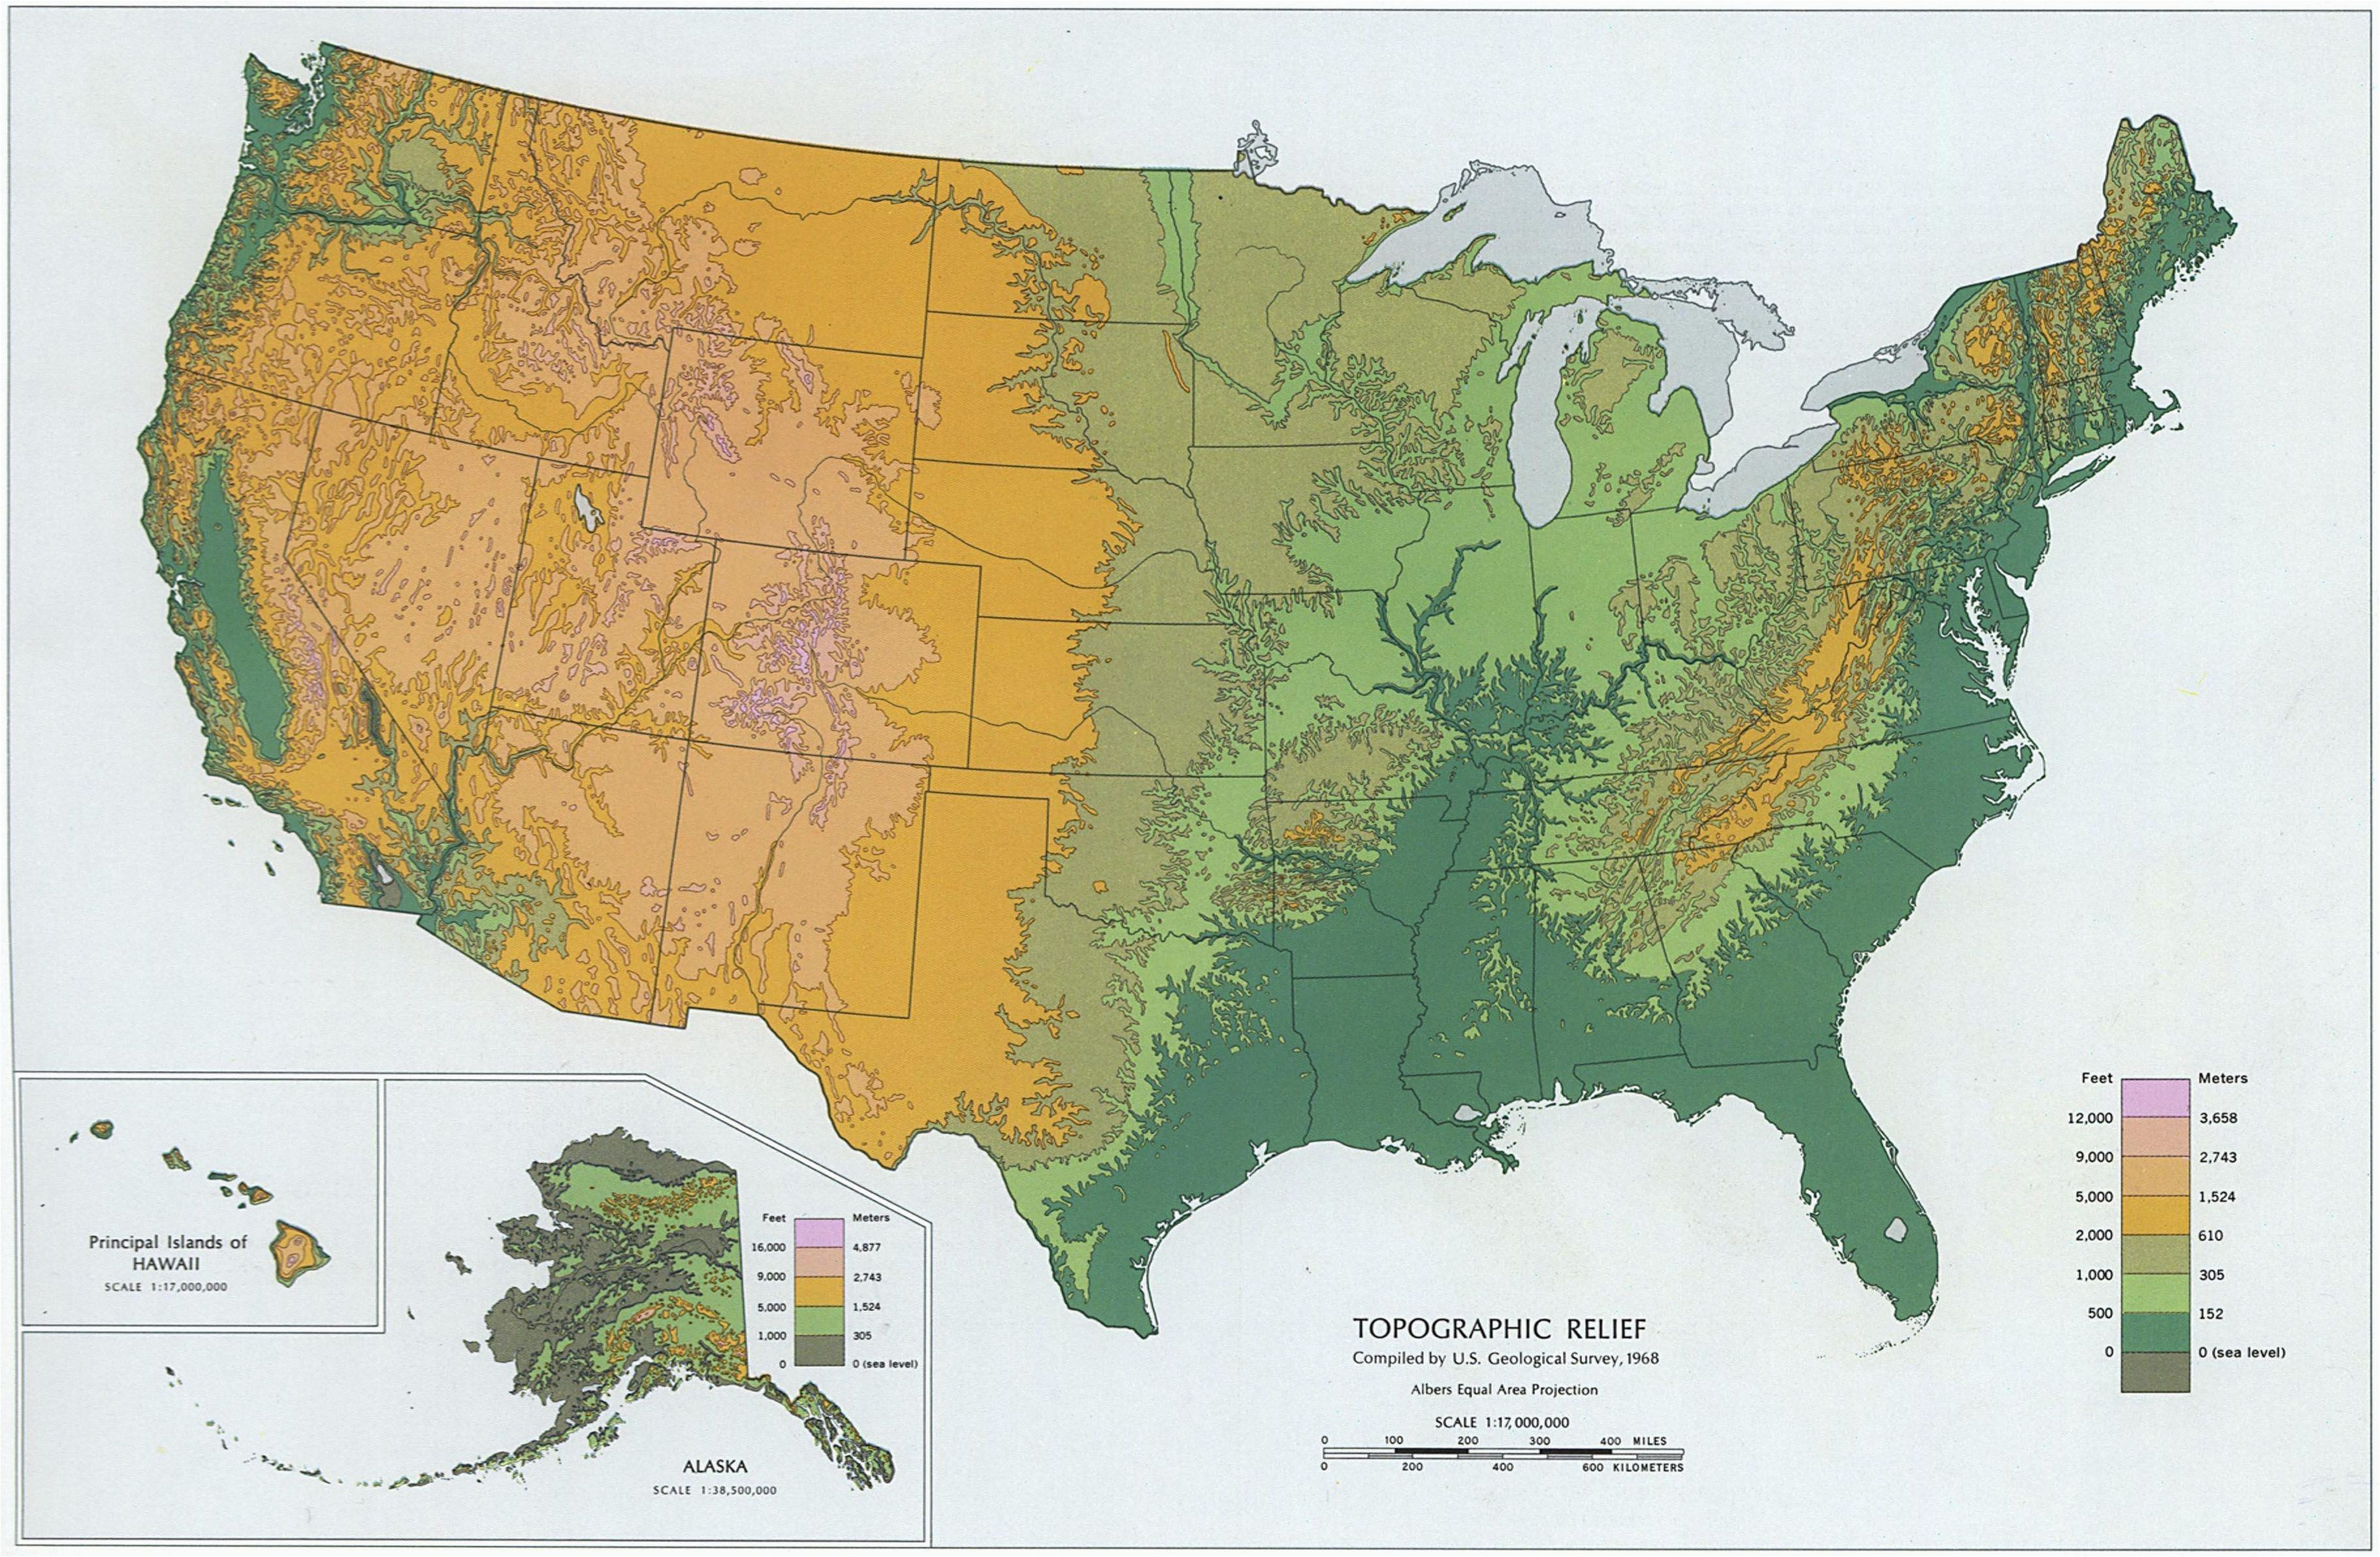 Colorado Springs Topographic Map Northeast Us Elevation Map New - Map-of-eastern-us